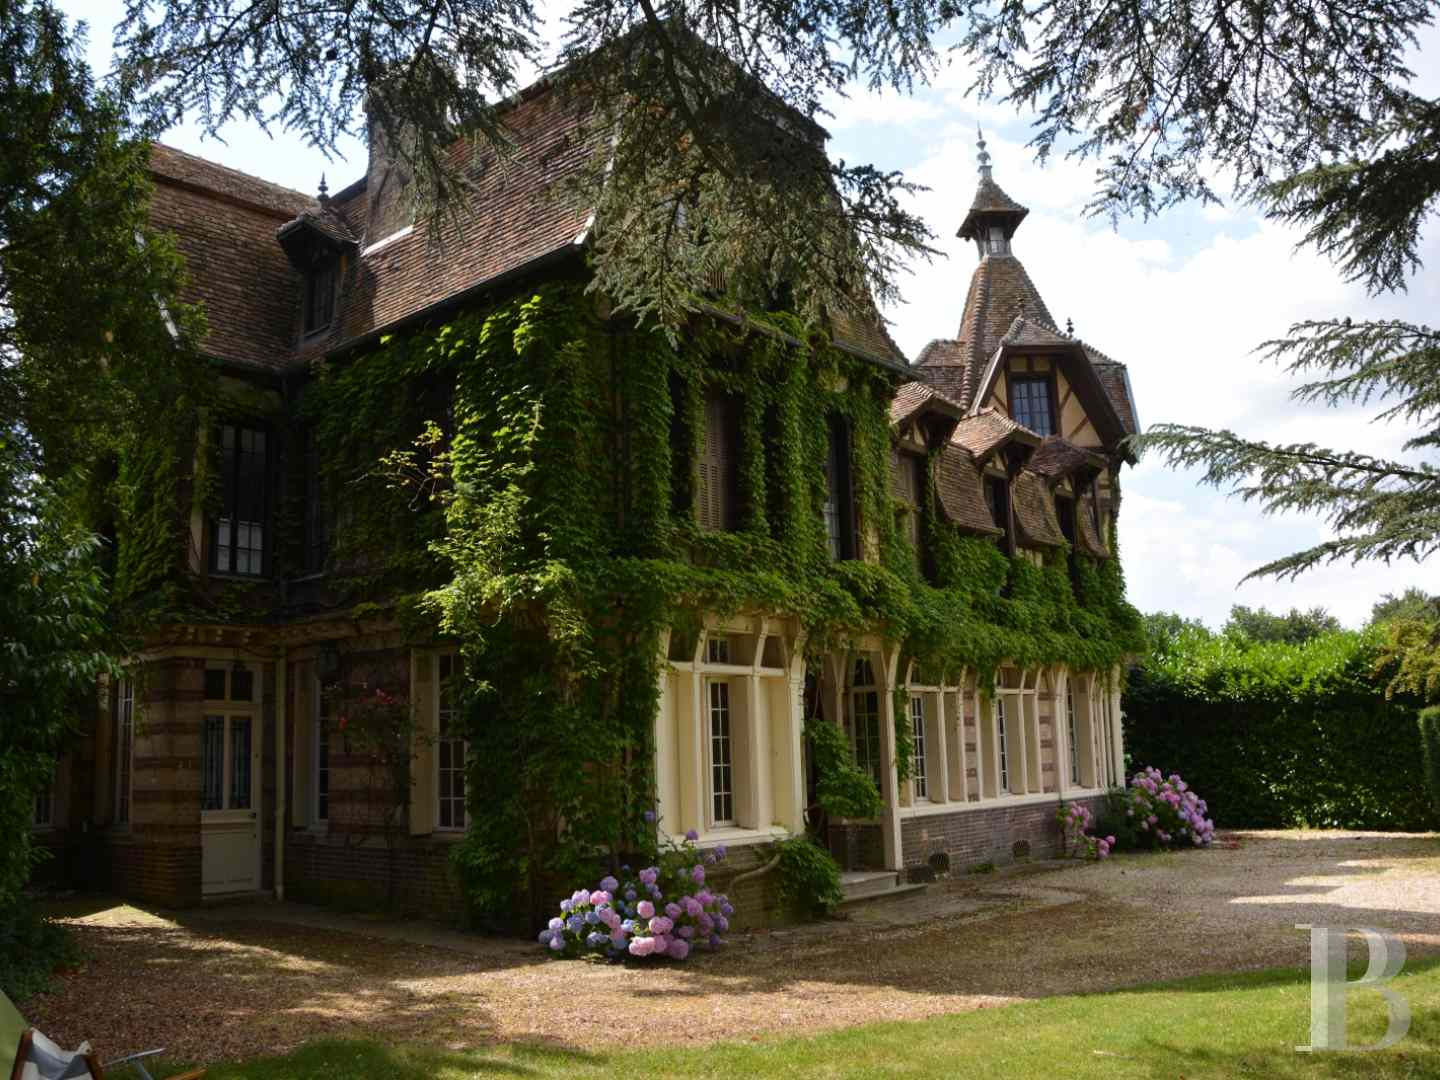 France mansions for sale upper normandy manors village - 4 zoom